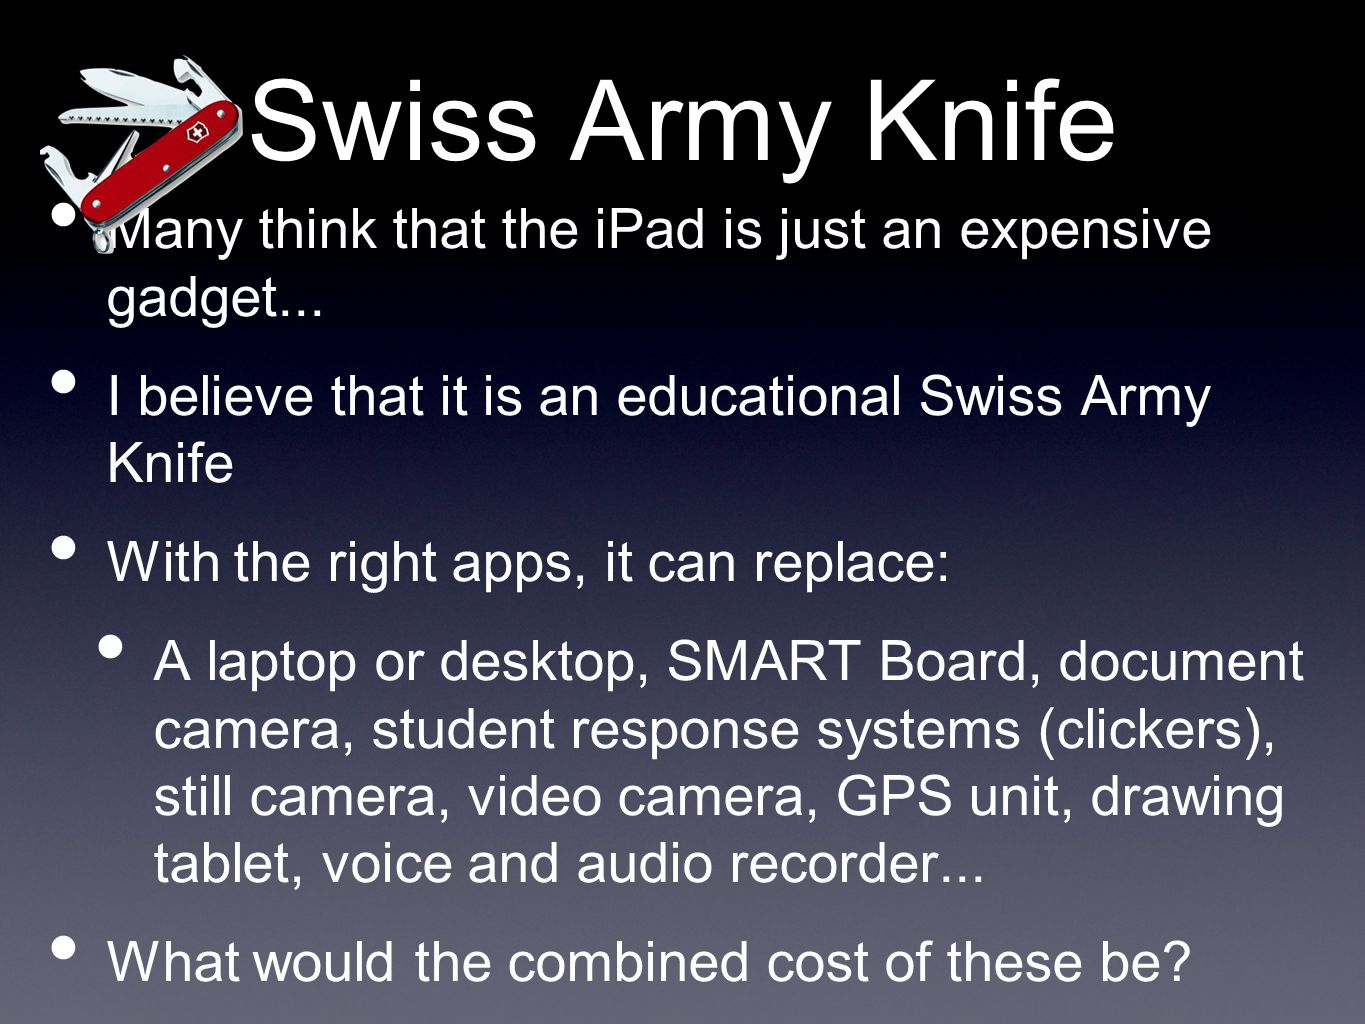 Swiss Army Knife Many think that the iPad is just an expensive gadget...